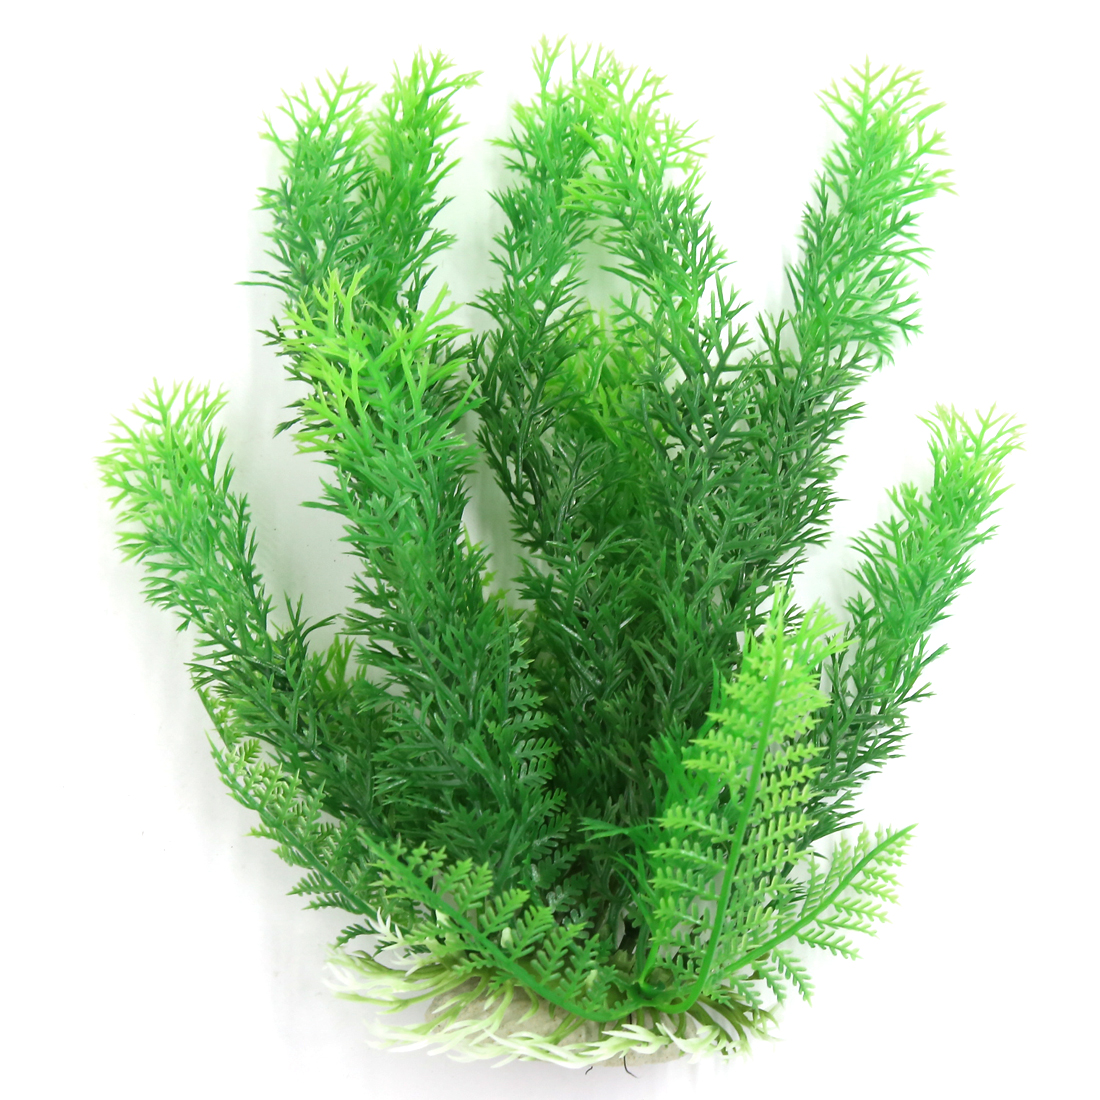 Aqua Landscape Fish Tank Decoration Green Plastic Plant for Betta 23cm